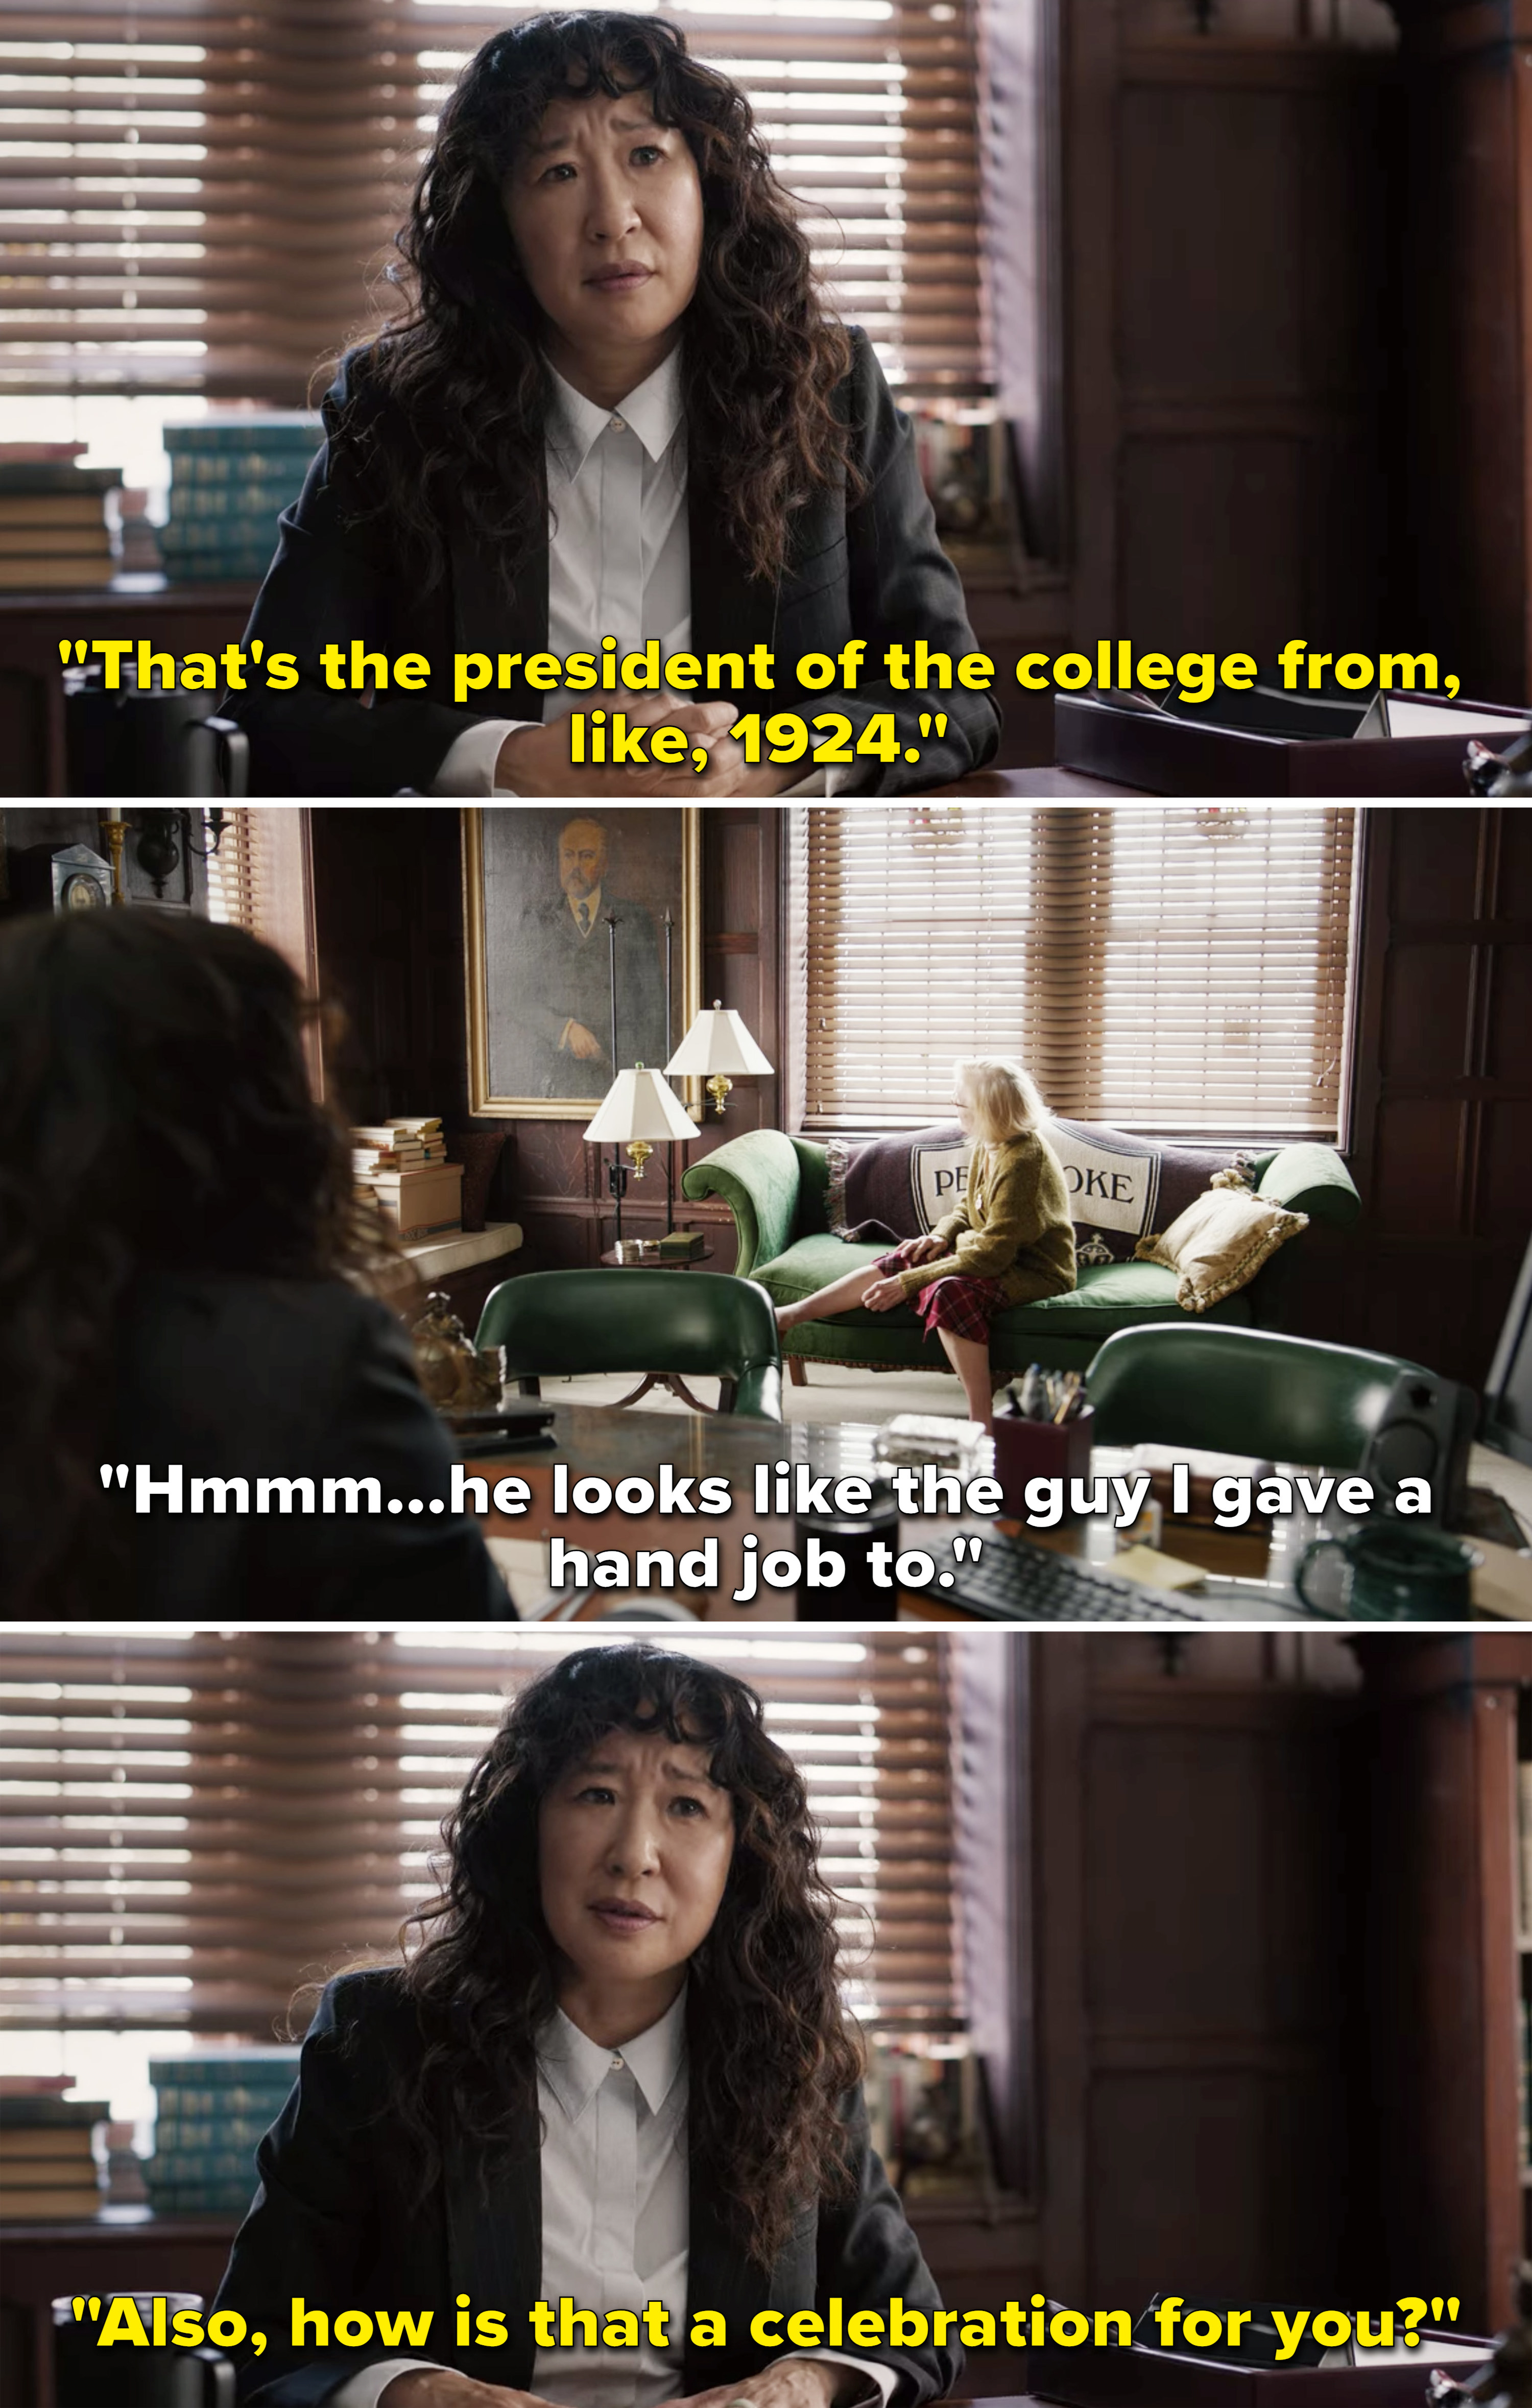 Joan saying the painting on the wall looks like a guy she gave a hand job too, and Ji-Yoon saying it's the president of the college from 1924